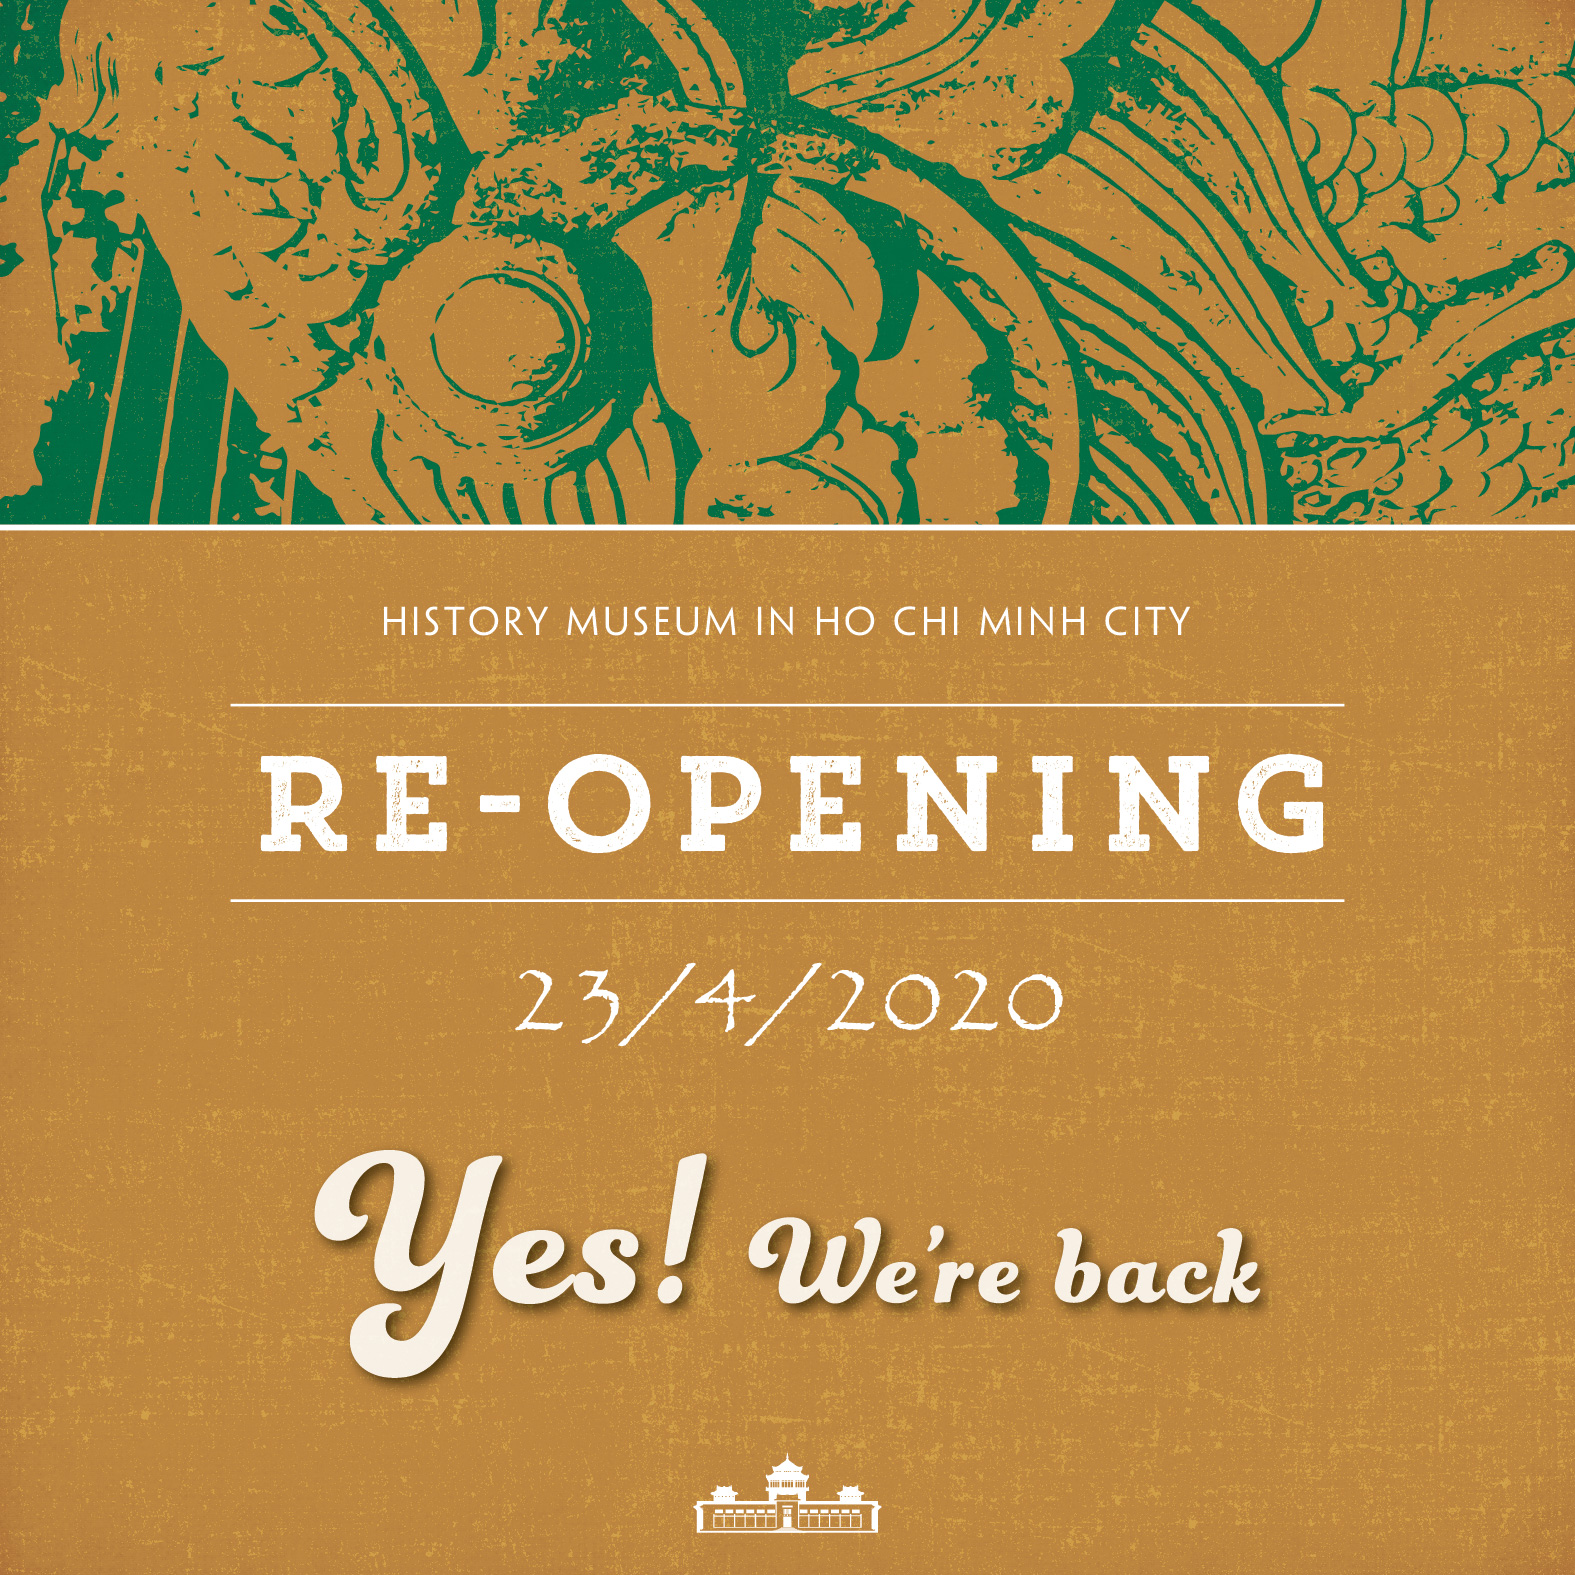 NOTICE OF RE-OPENING